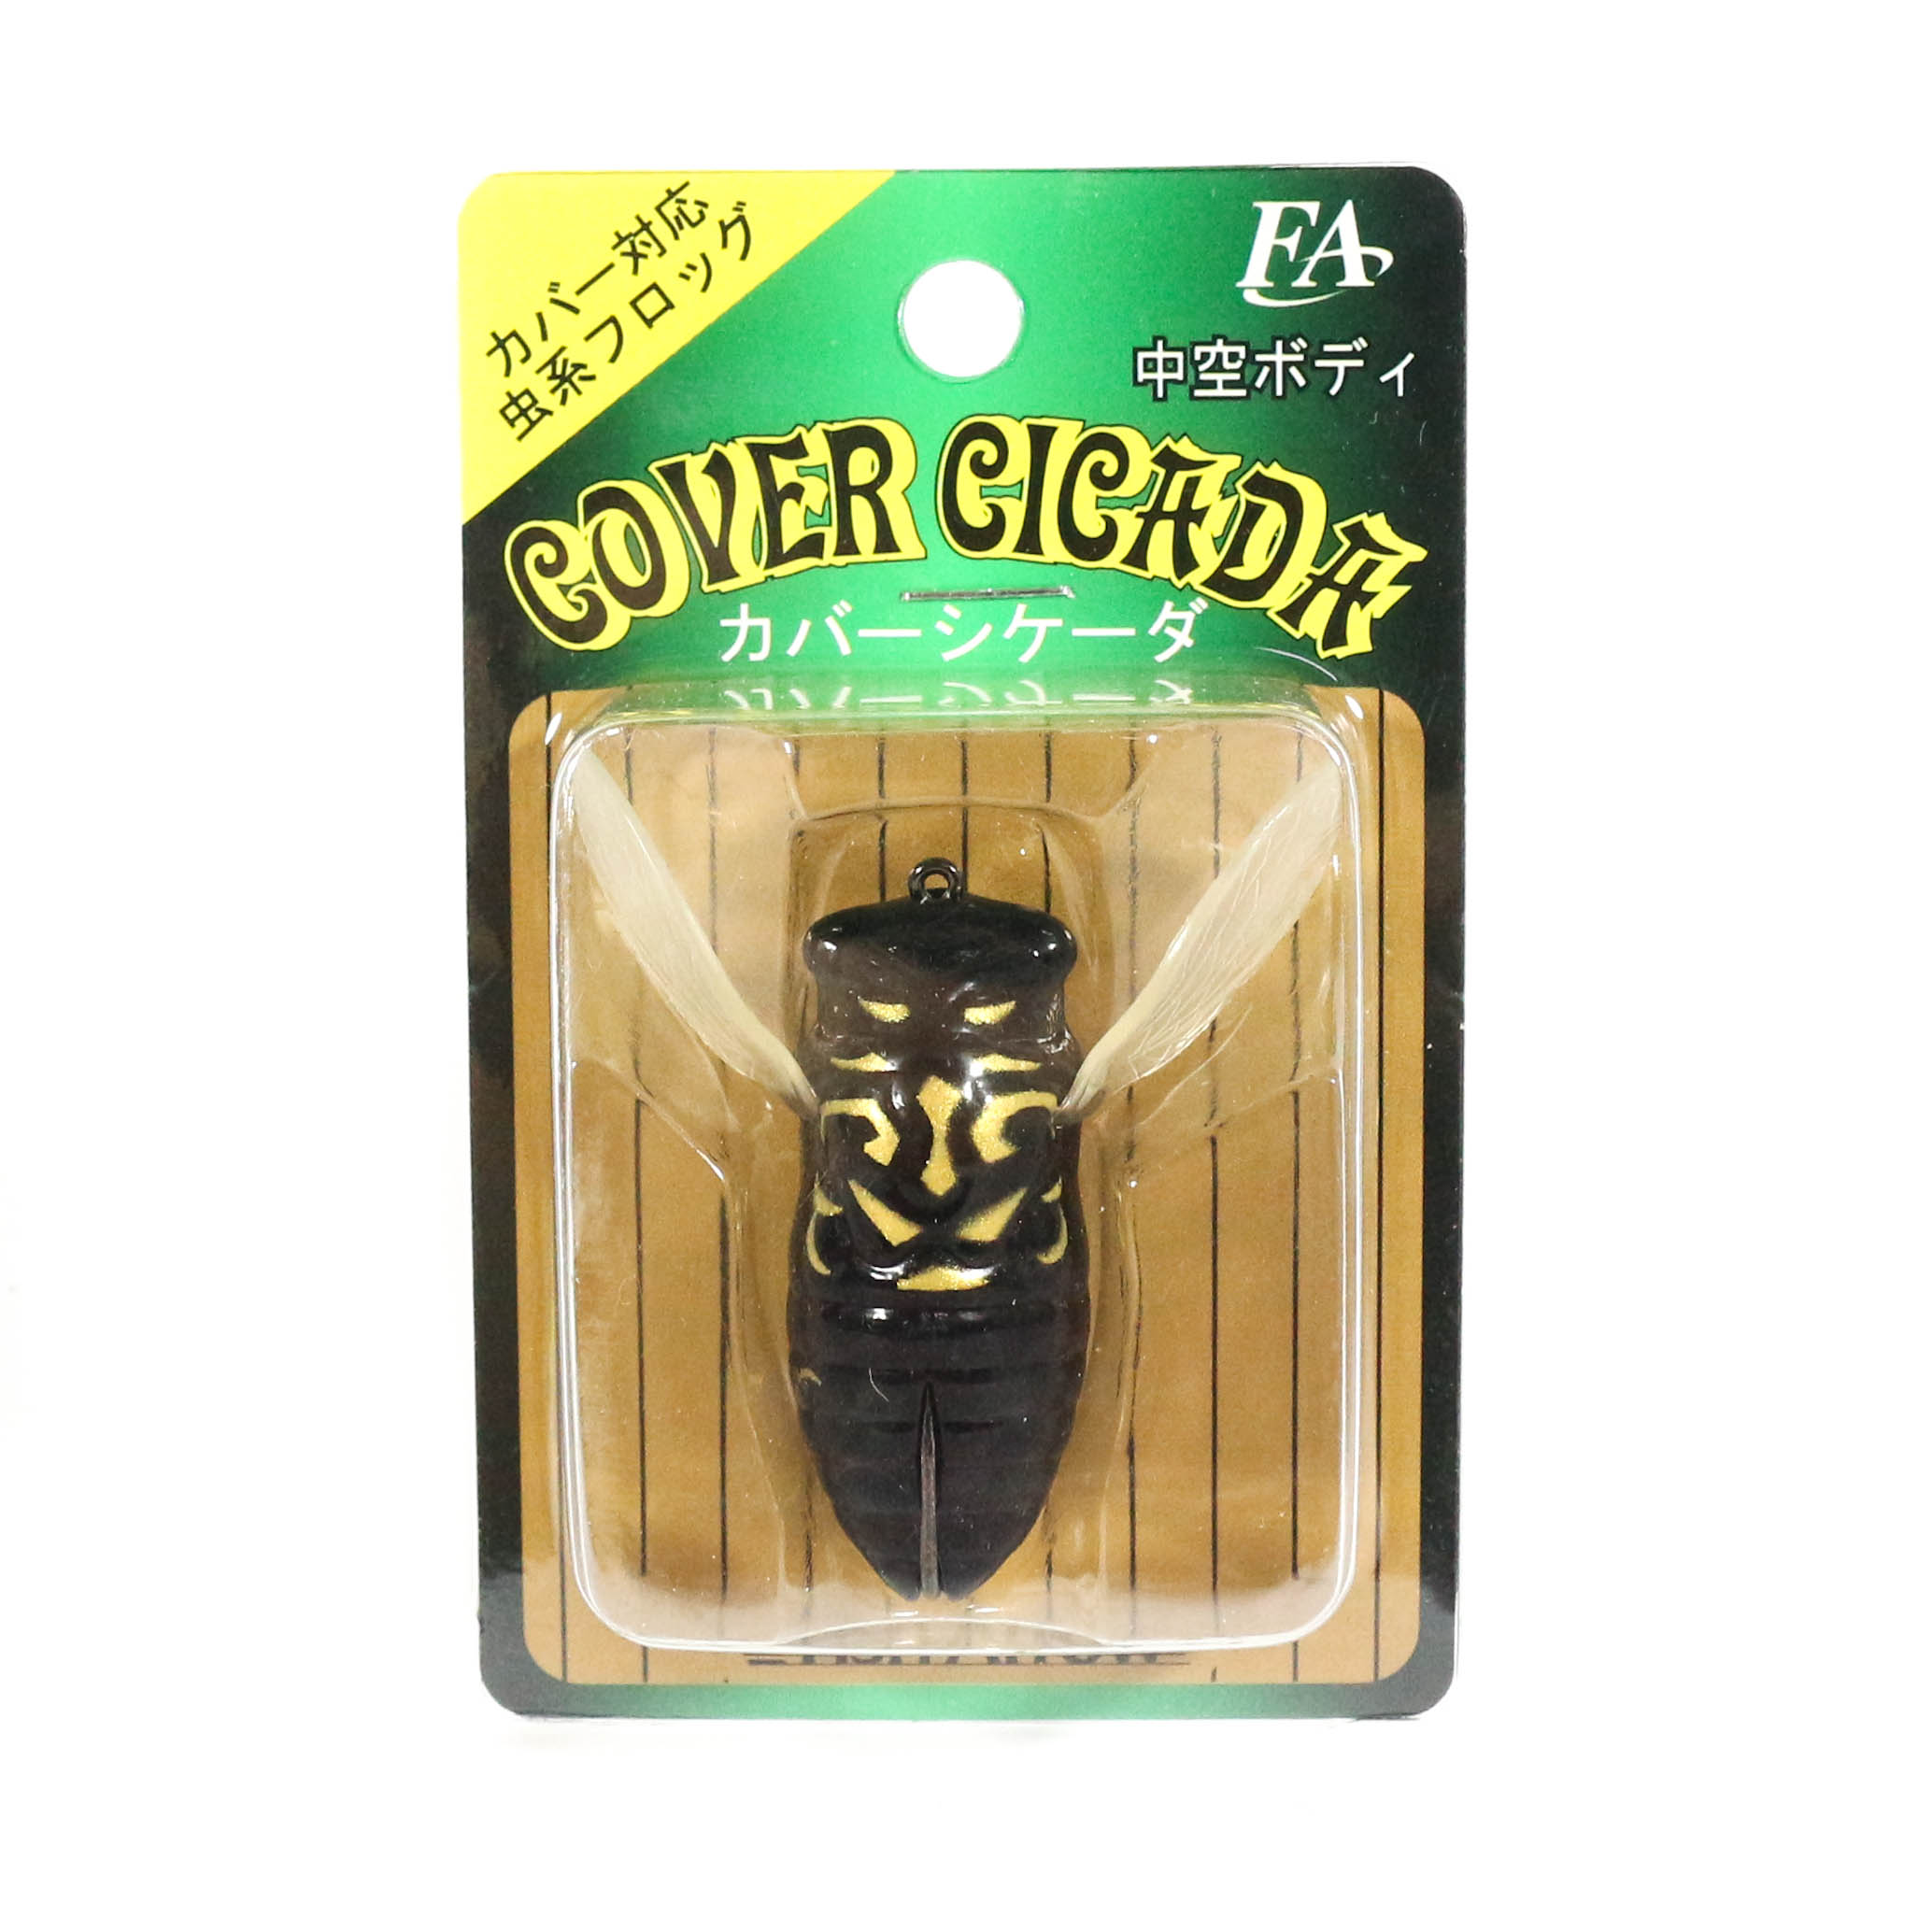 Fish Arrow Soft Lure Cover Cicada 7 gram 4.5 cm #05 (5107)